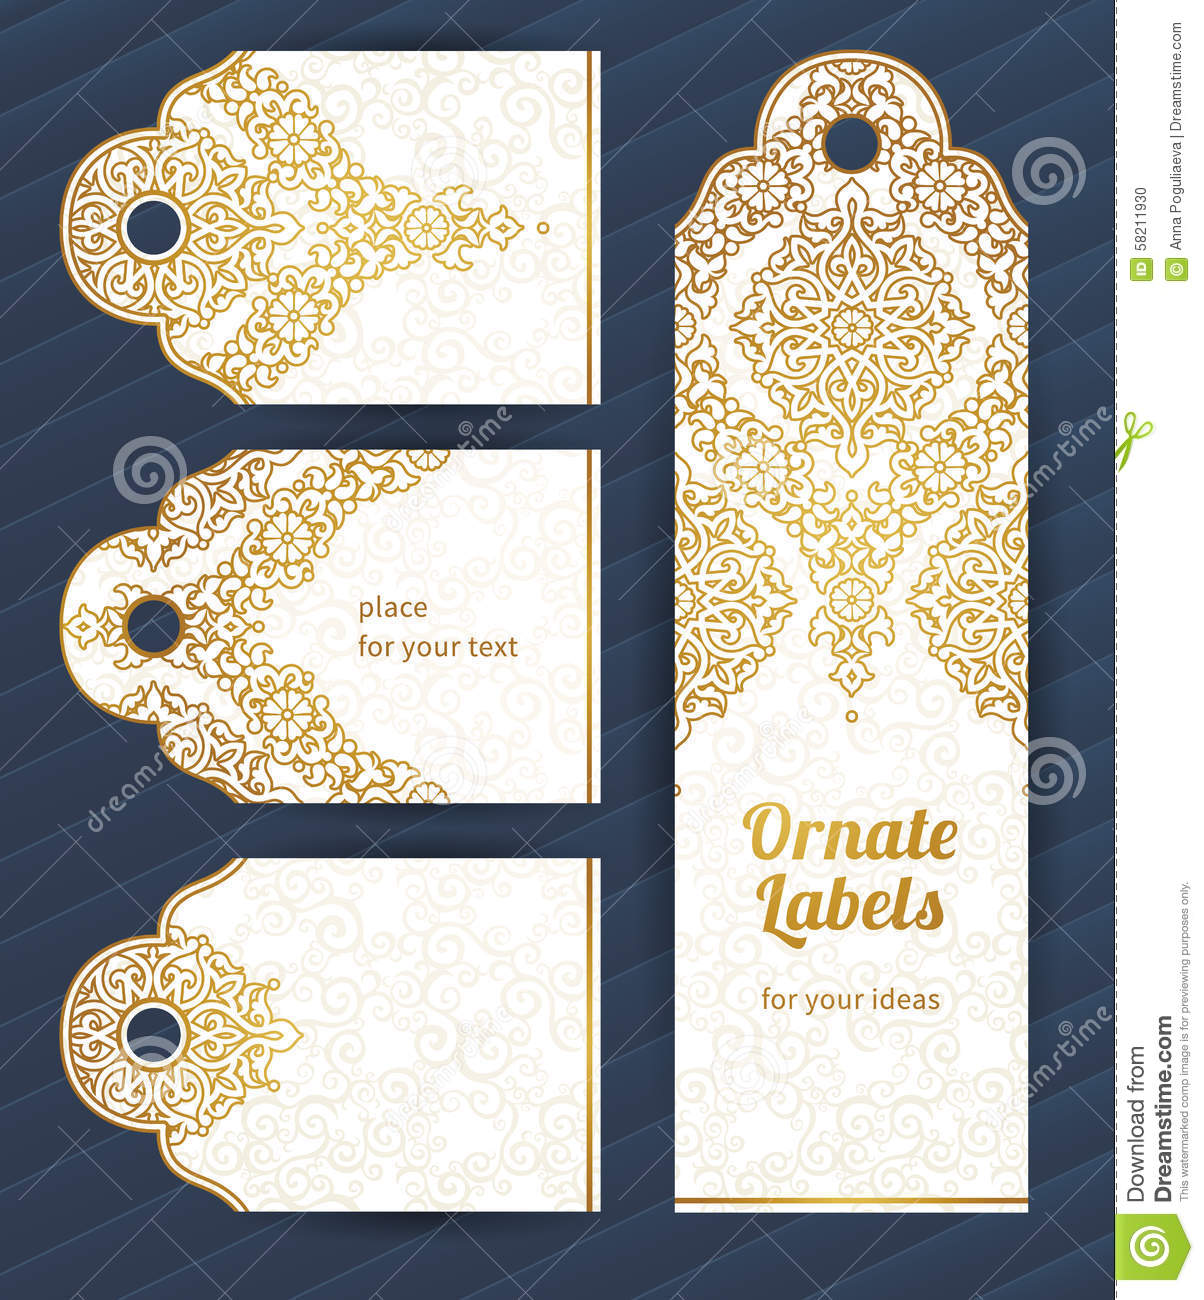 Vintage Ornate Cards In Eastern Style Stock Vector Illustration